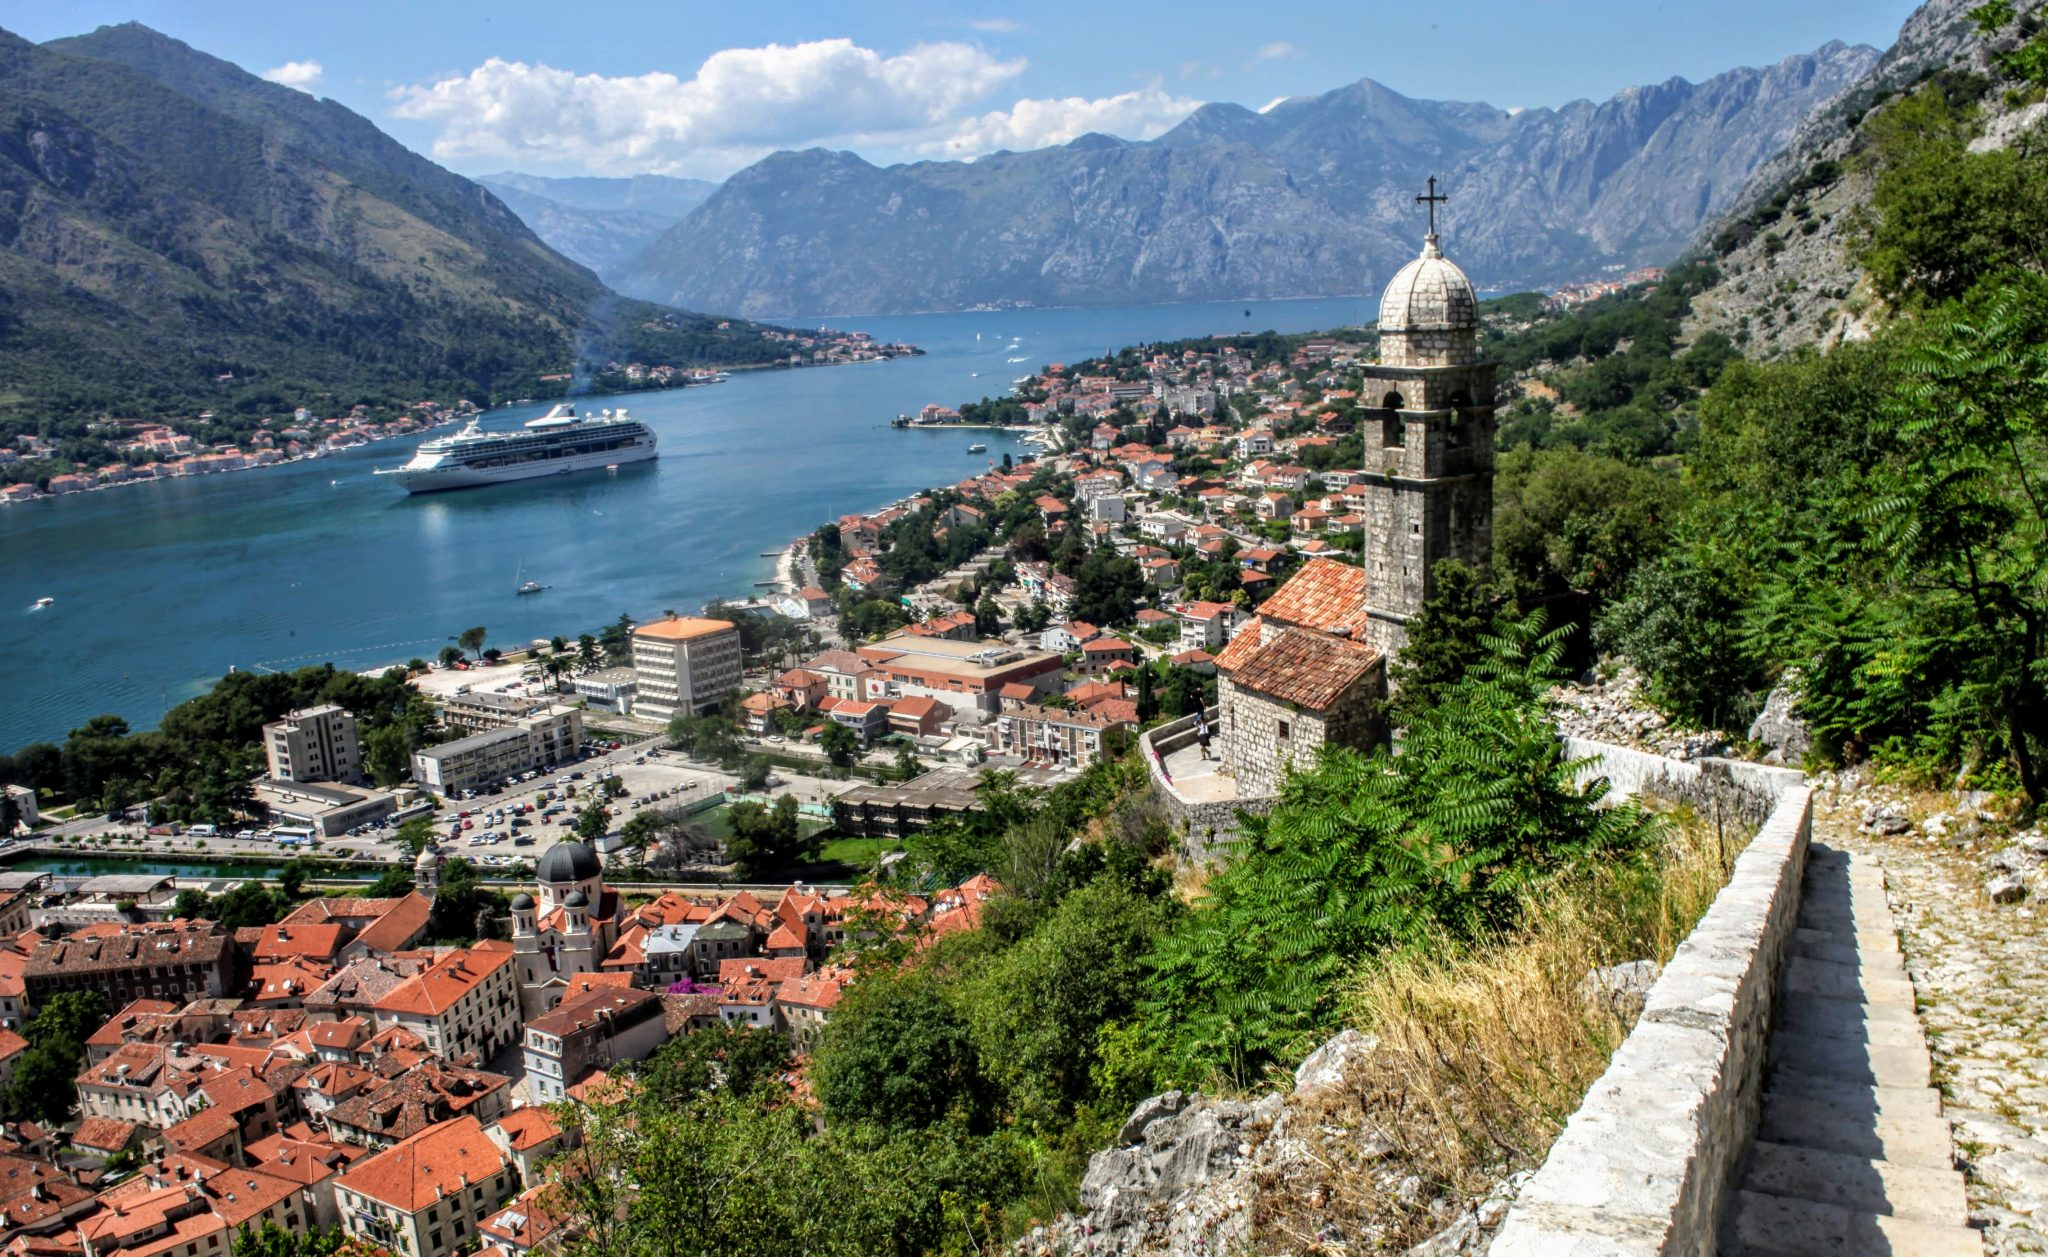 Cruise ship in Kotor, Montenegro